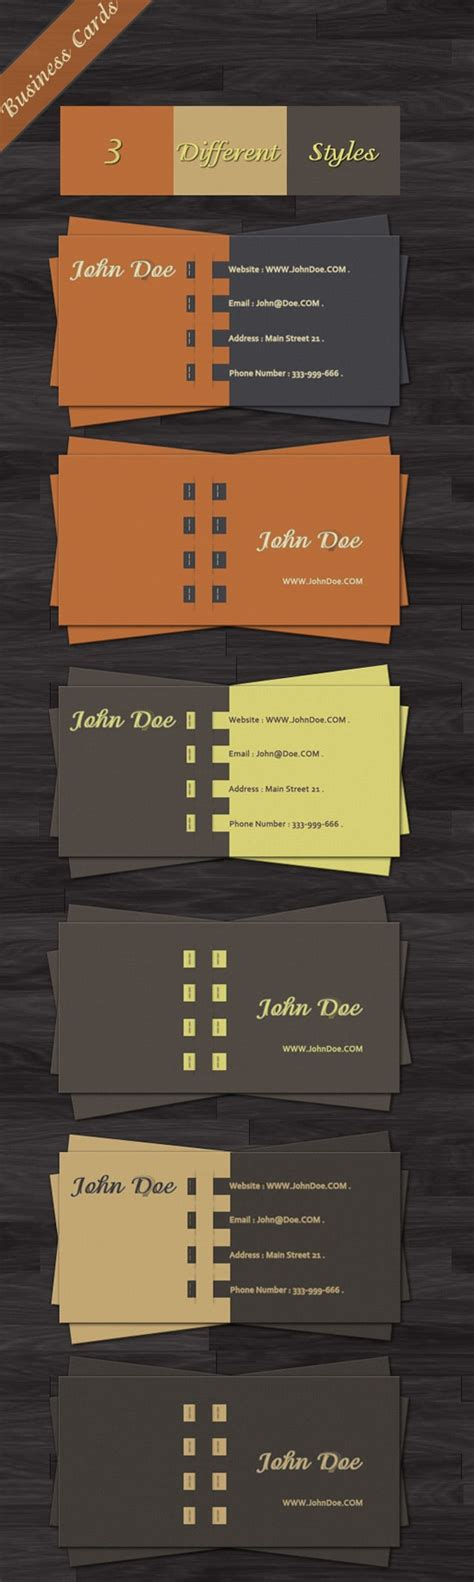 inkscape templates business cards 100 free business card templates designrfix